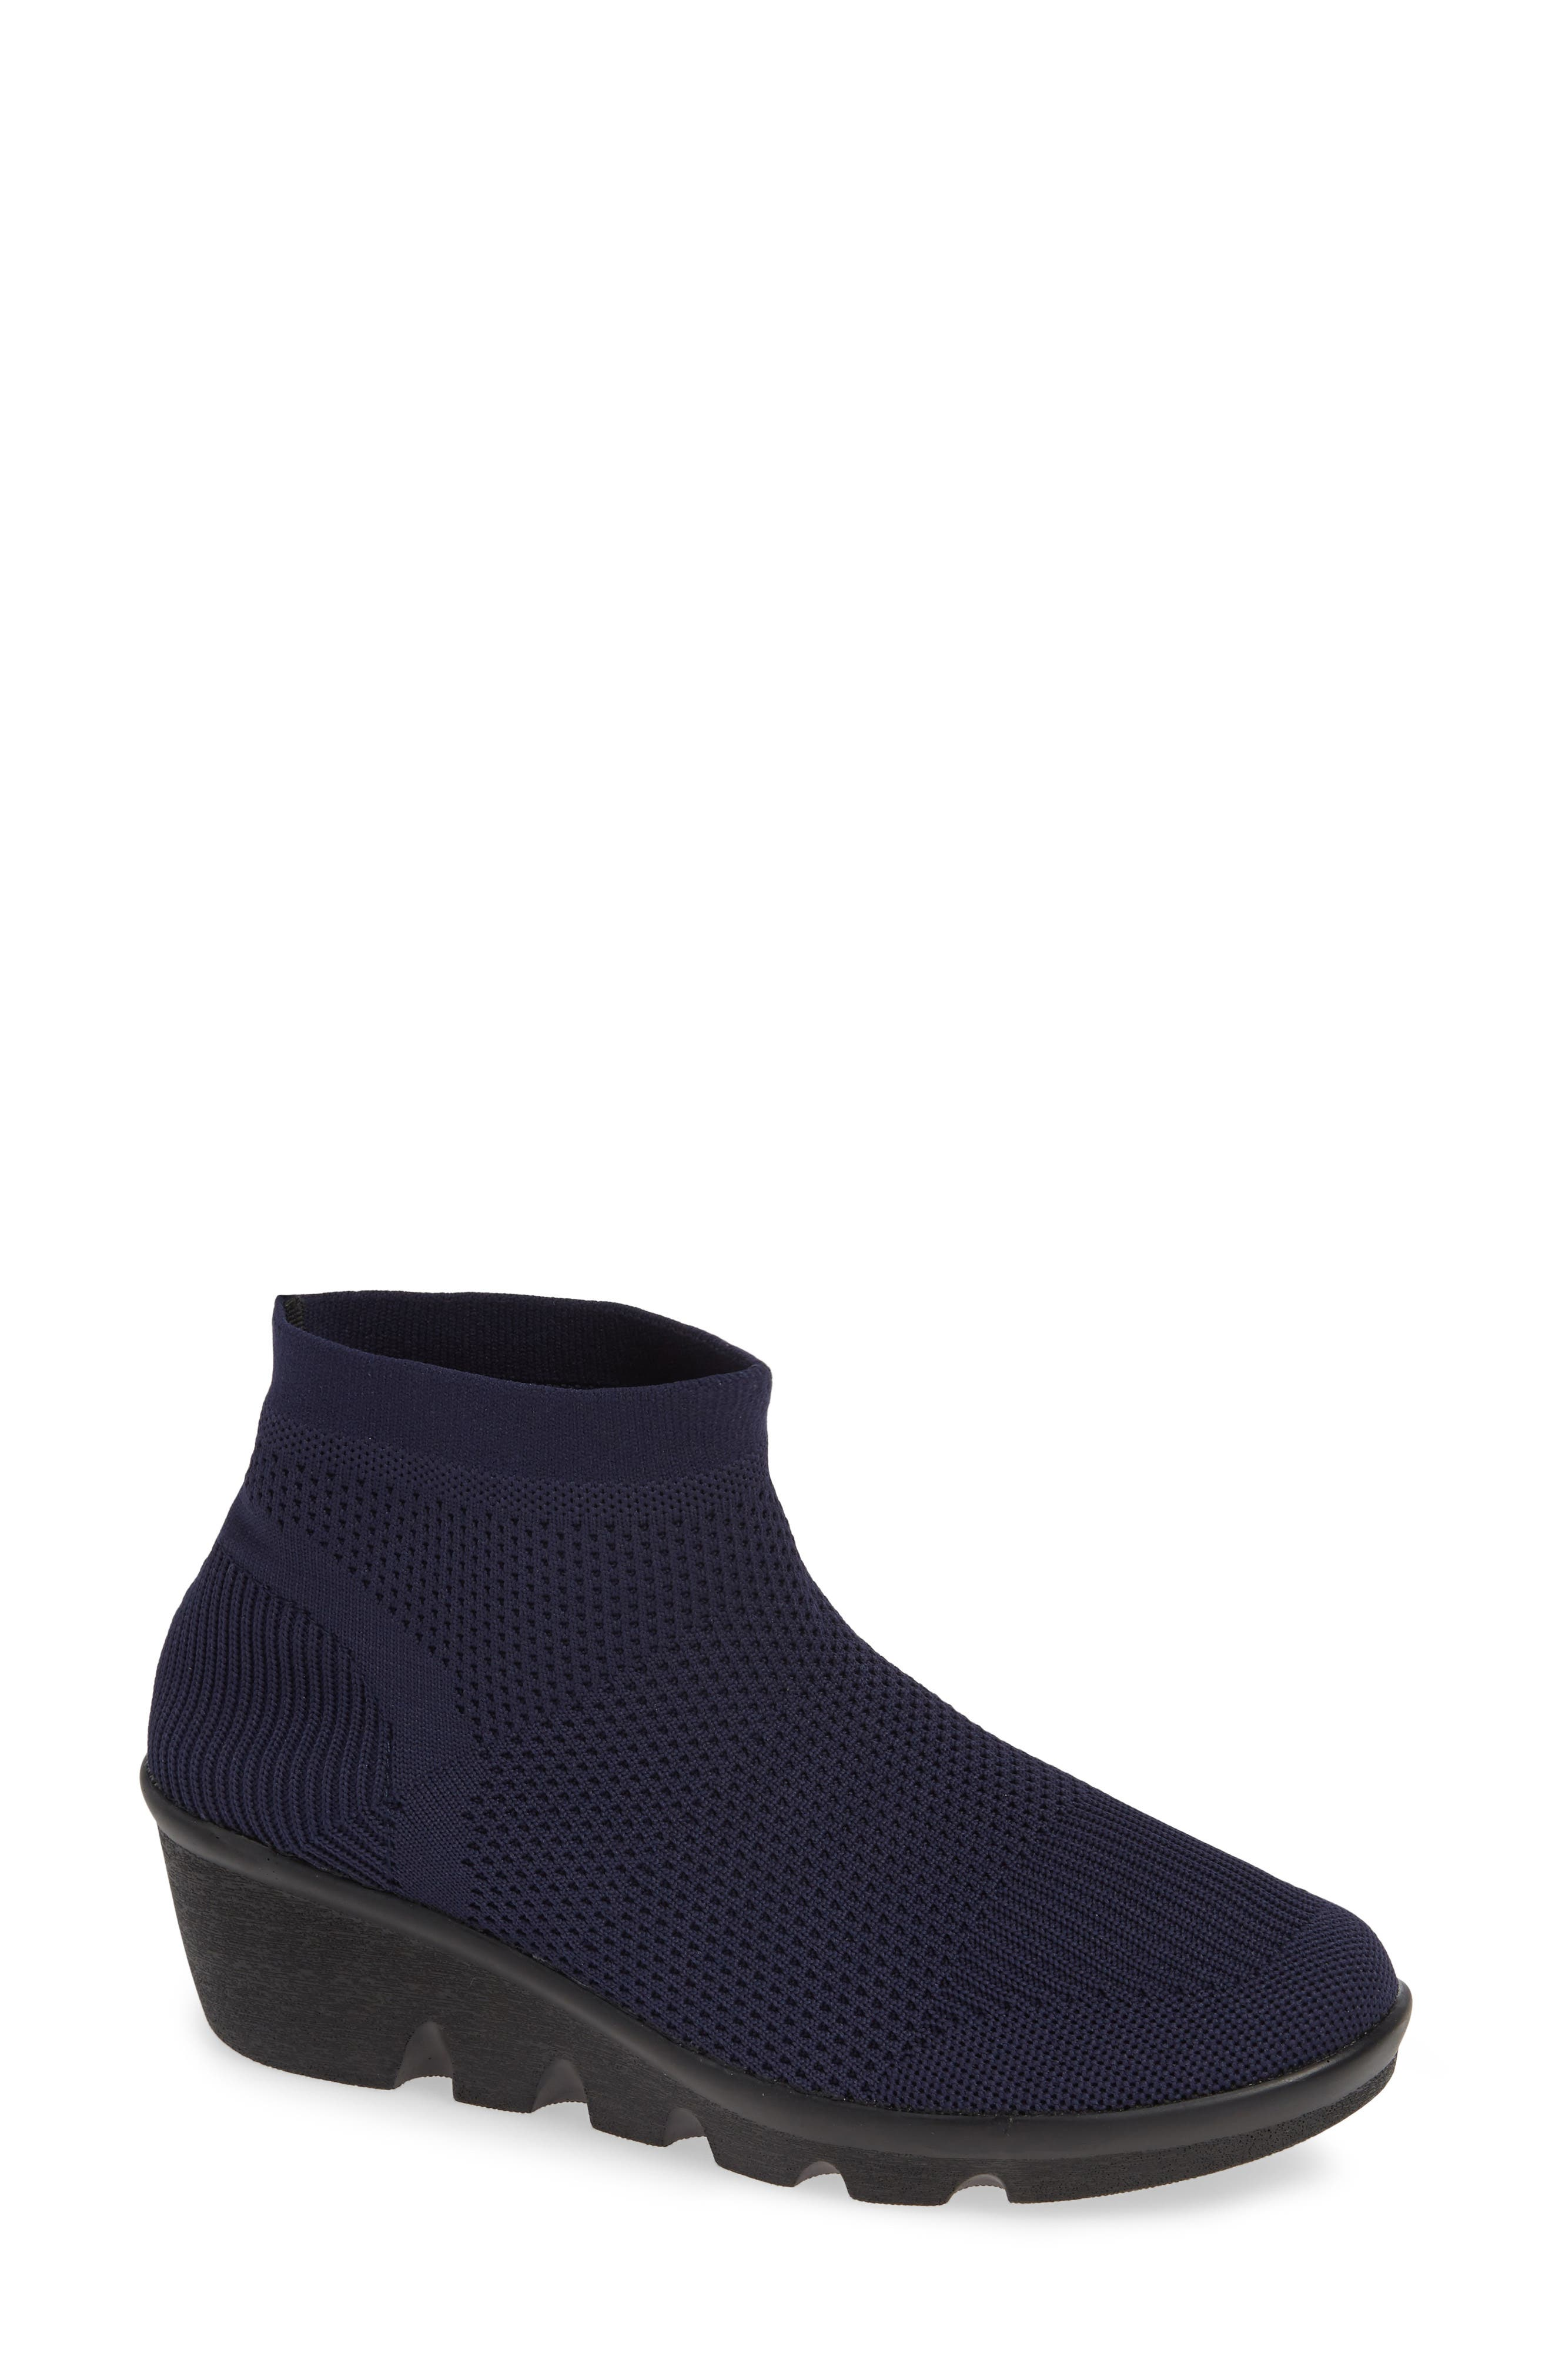 BERNIE MEV. Camryn Knit Bootie, Main, color, NAVY FABRIC